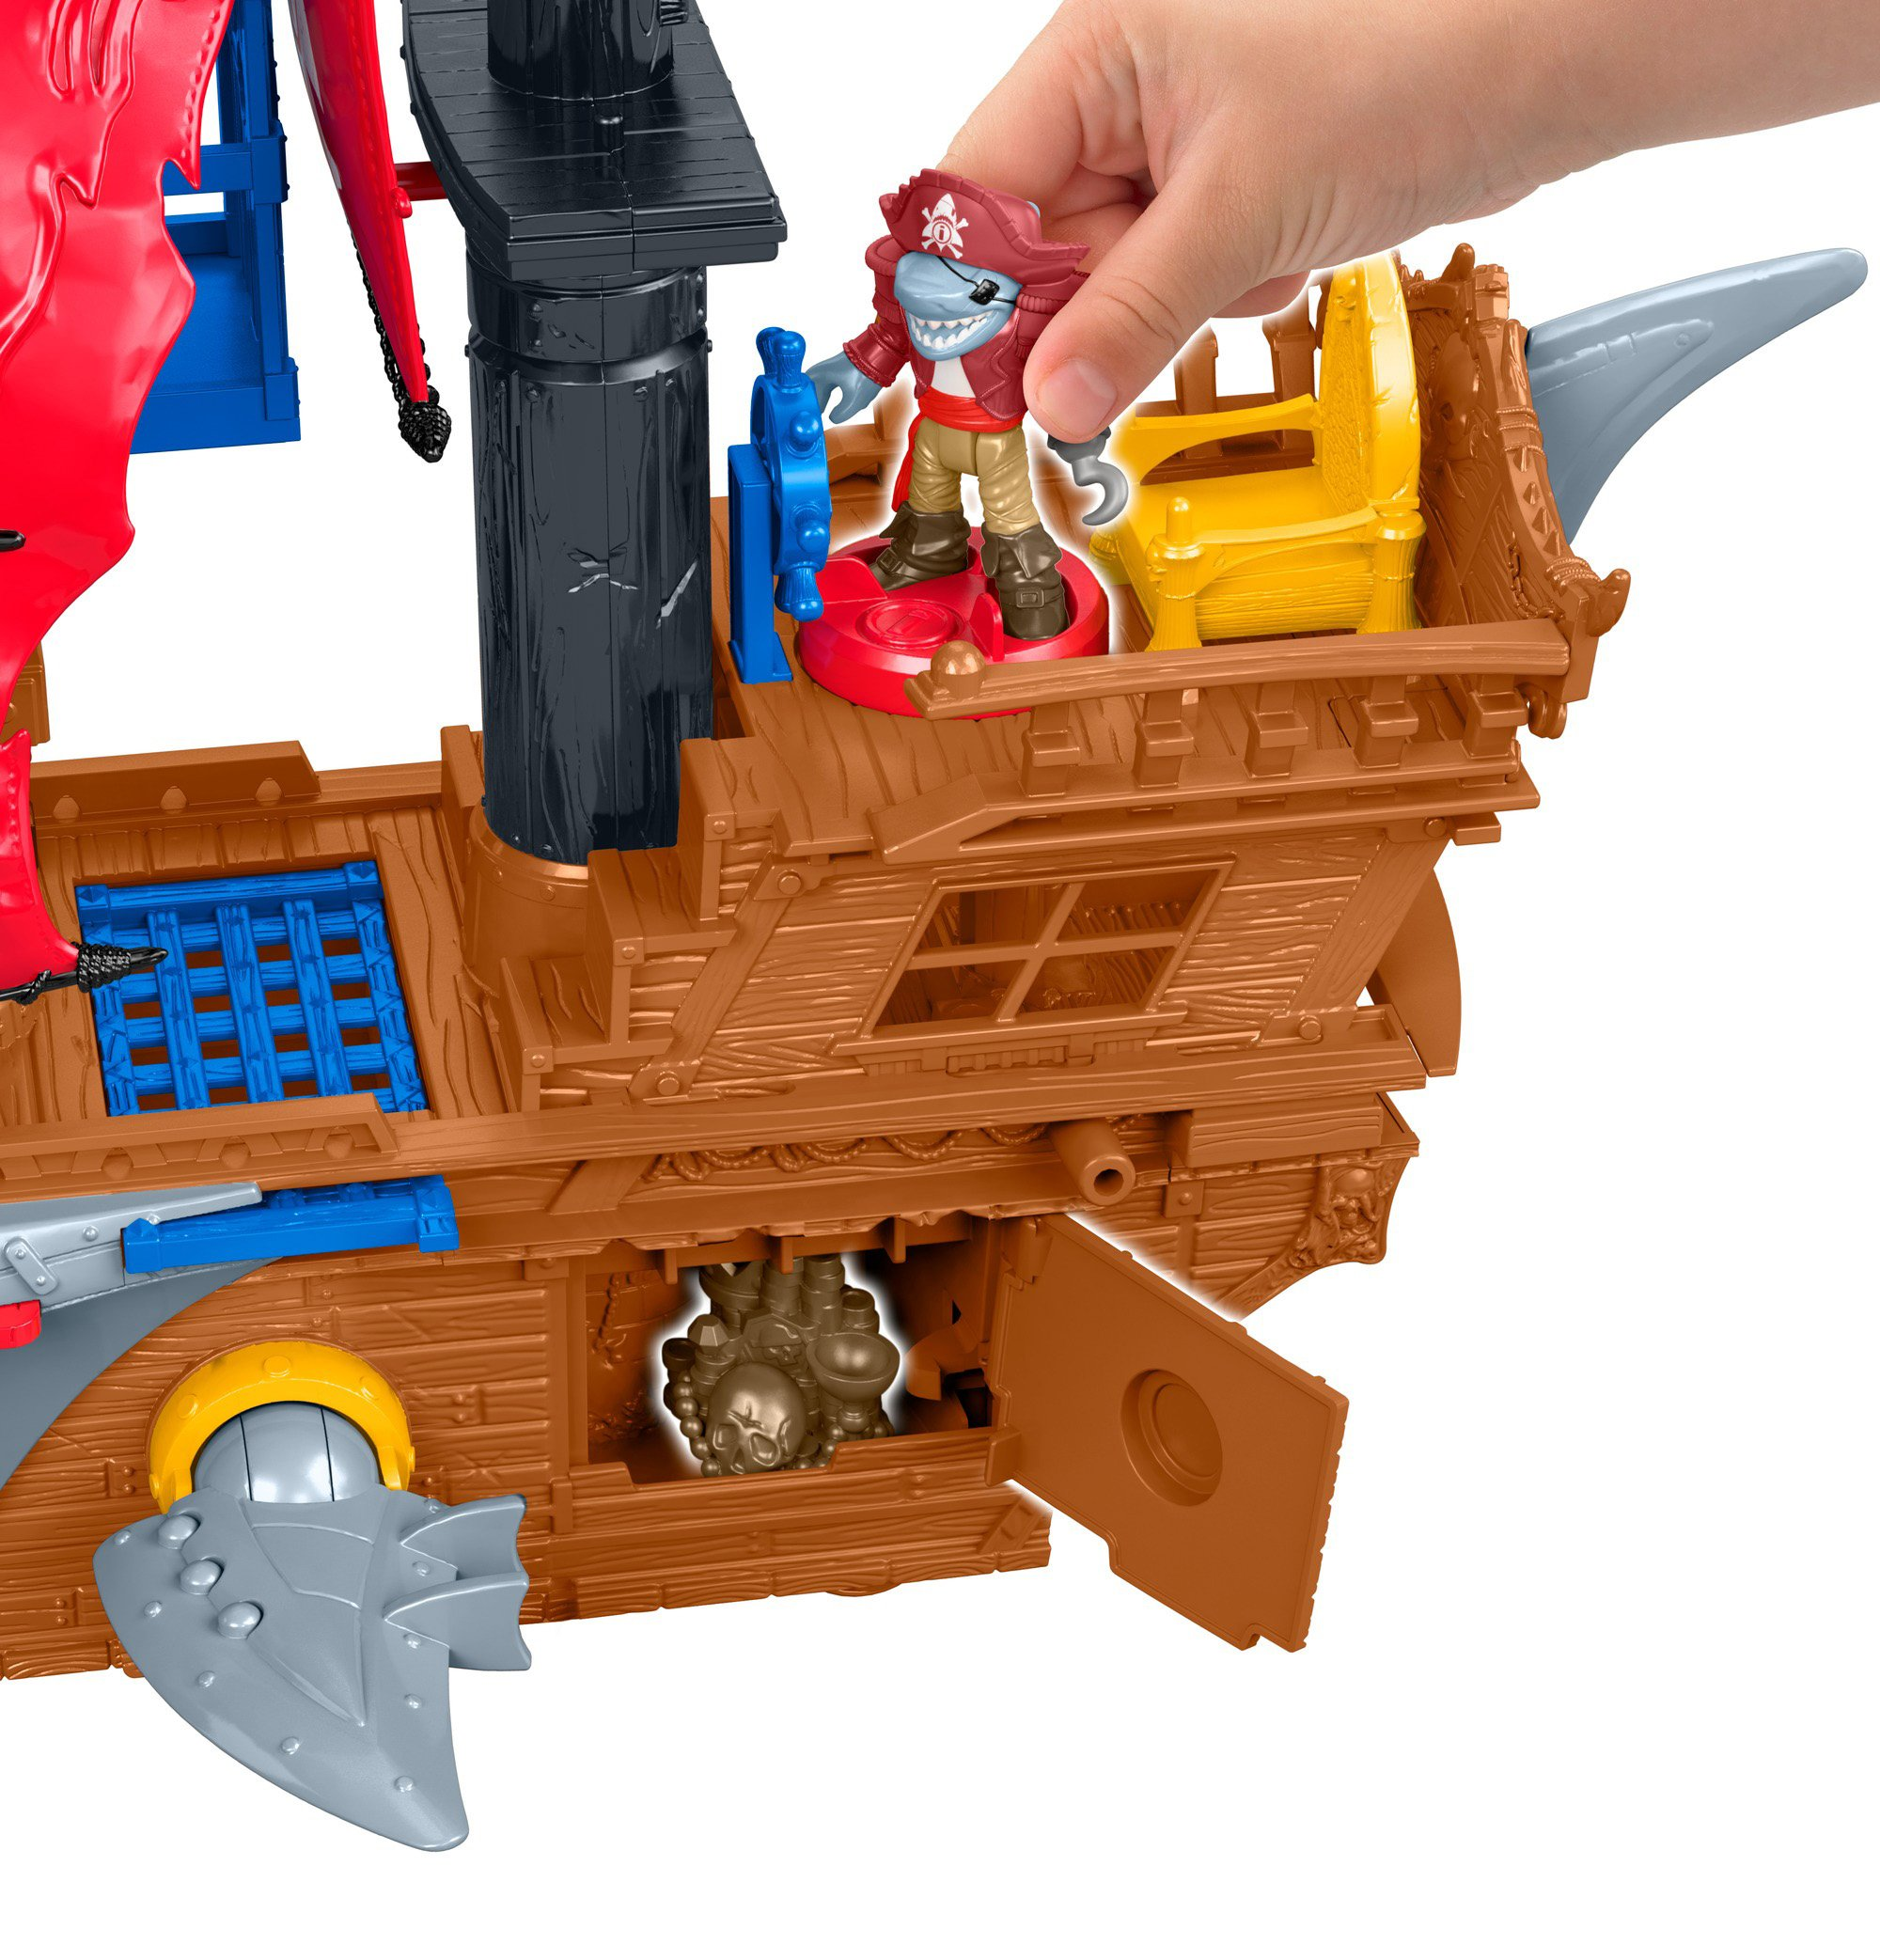 Fisher-Price Imaginext Shark Bite Pirate Ship, Playset with Pirate Figures and Accessories for Preschool Kids Ages 3 to 8 Years